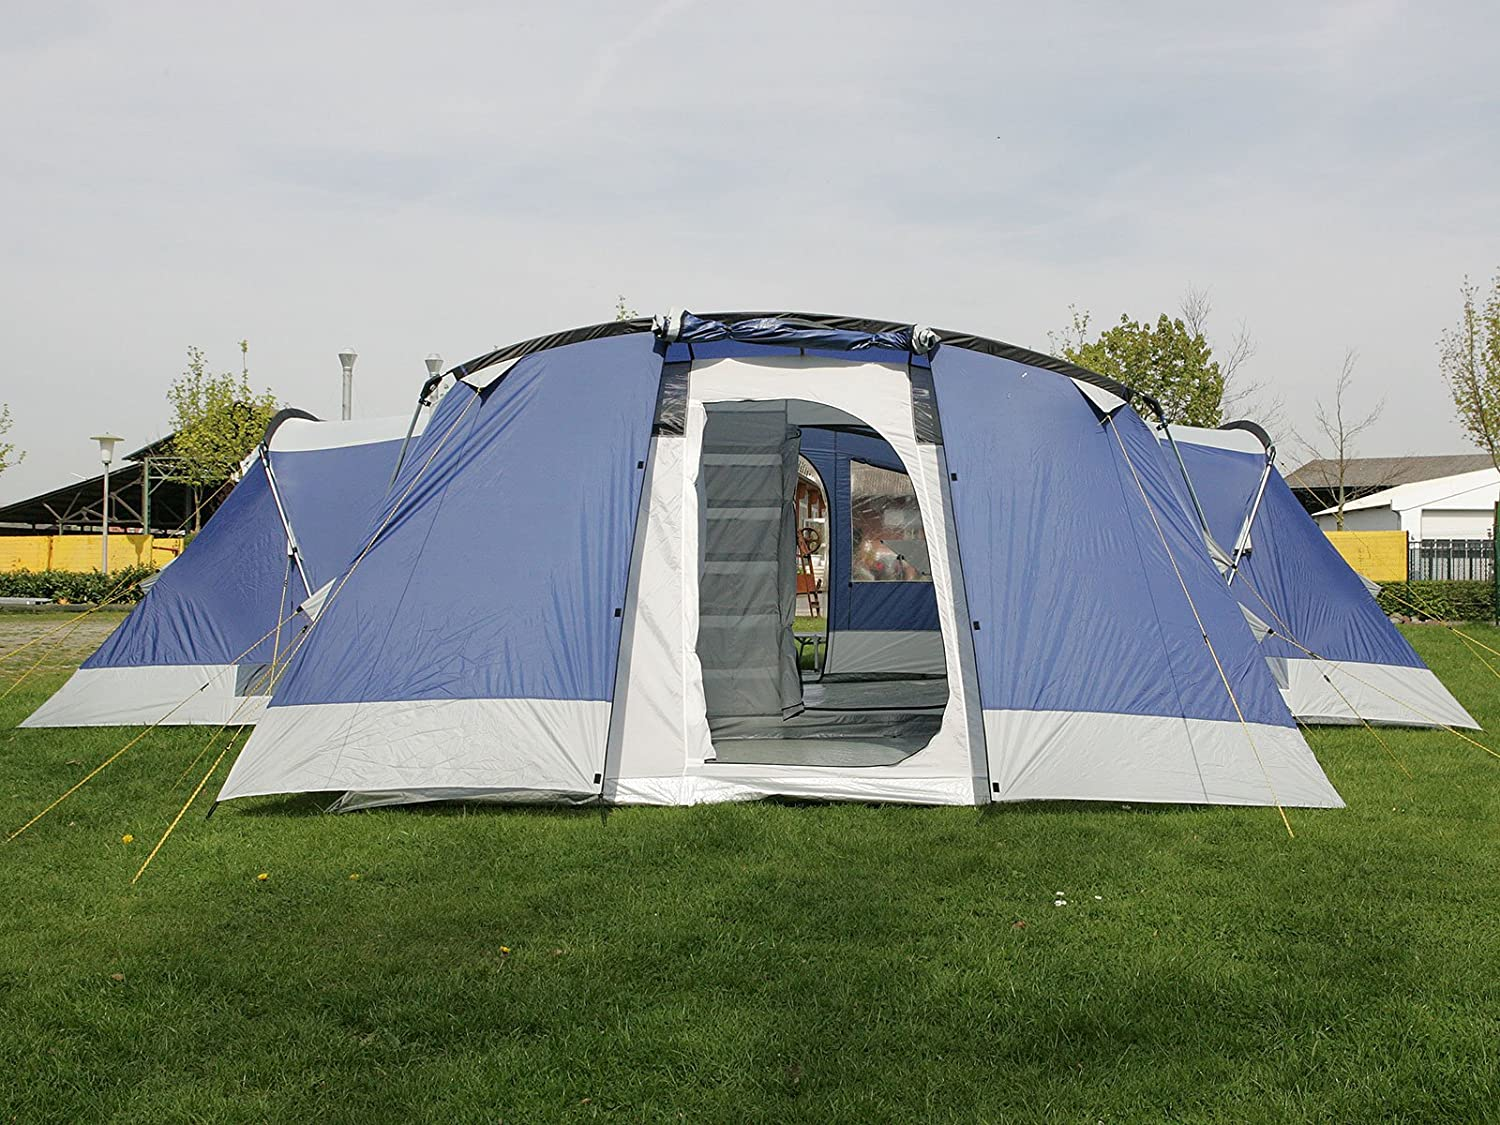 Skandika Nimbus Family Group Hybrid Design Tunnel Tent 3 Sleeping Rooms Moveable Front Wall 200 cm Peak Height Blue 12-Person/Large Amazon.co.uk ... & Skandika Nimbus Family Group Hybrid Design Tunnel Tent 3 Sleeping ...